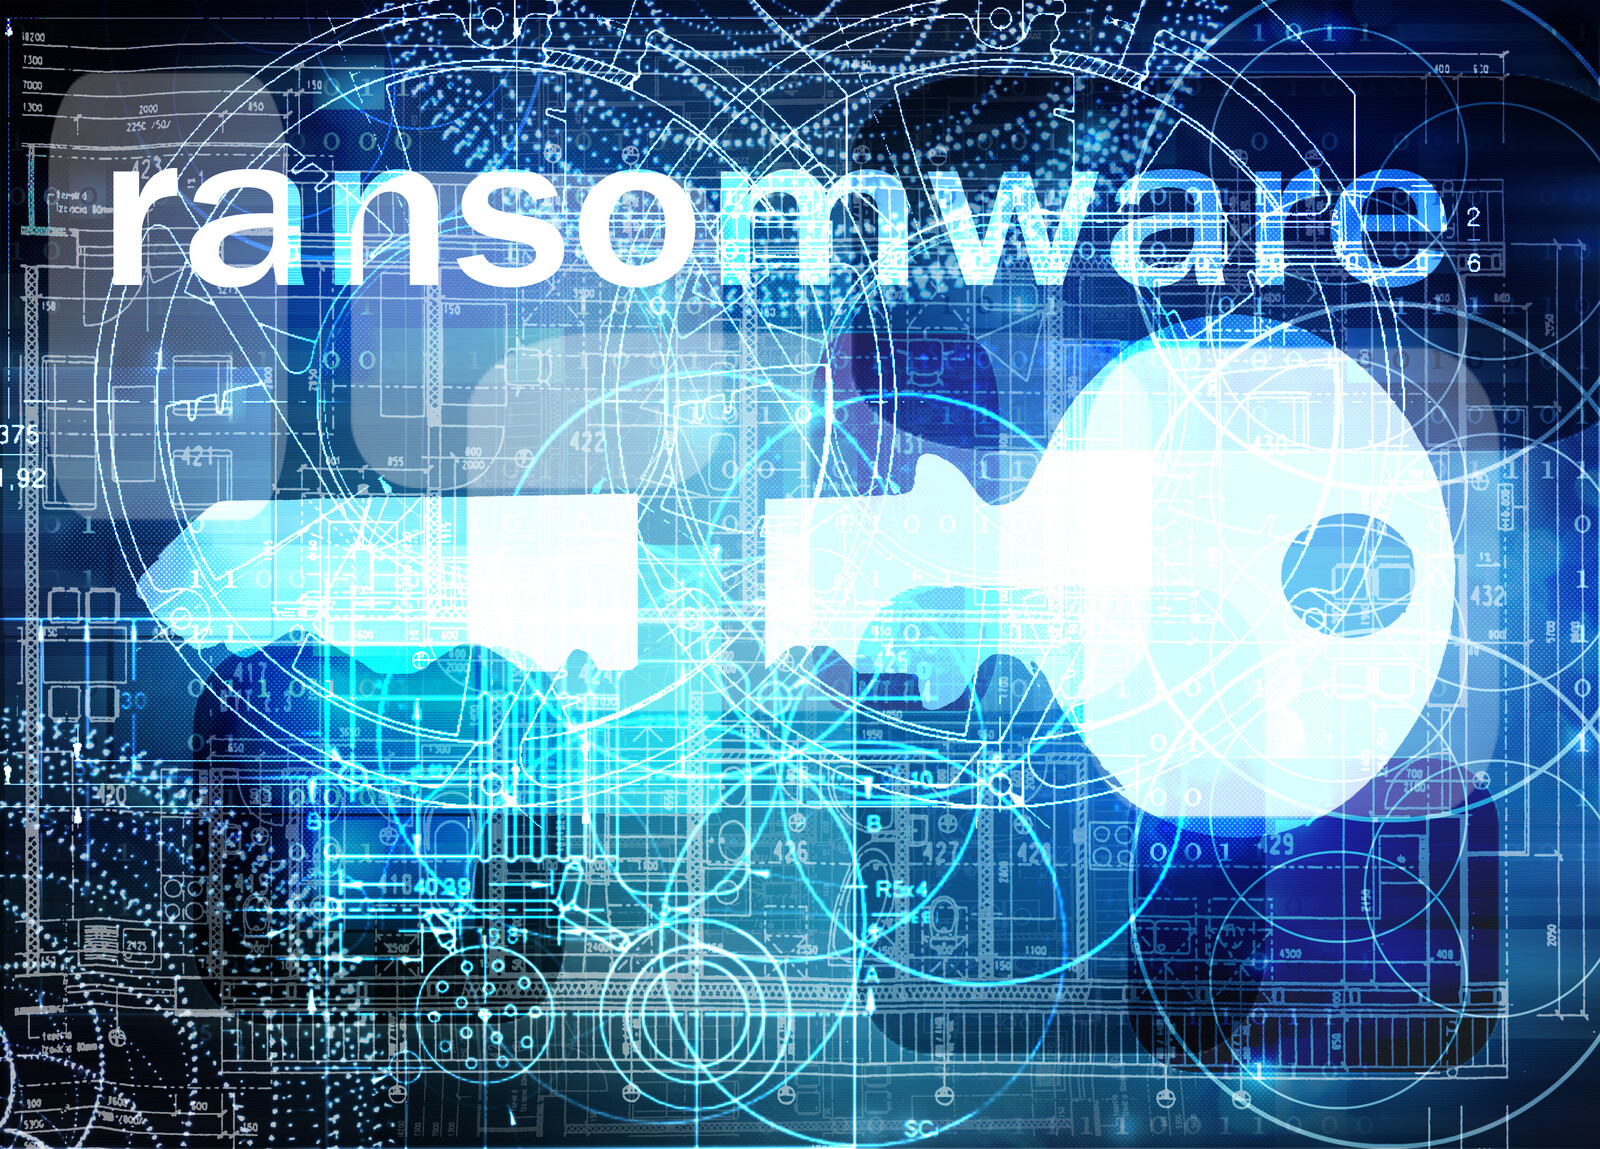 Blue Digital image with computer data layered on top of each other as the background and large key broken in the middle overlaying the top with ransomware written in bold white letters at the top